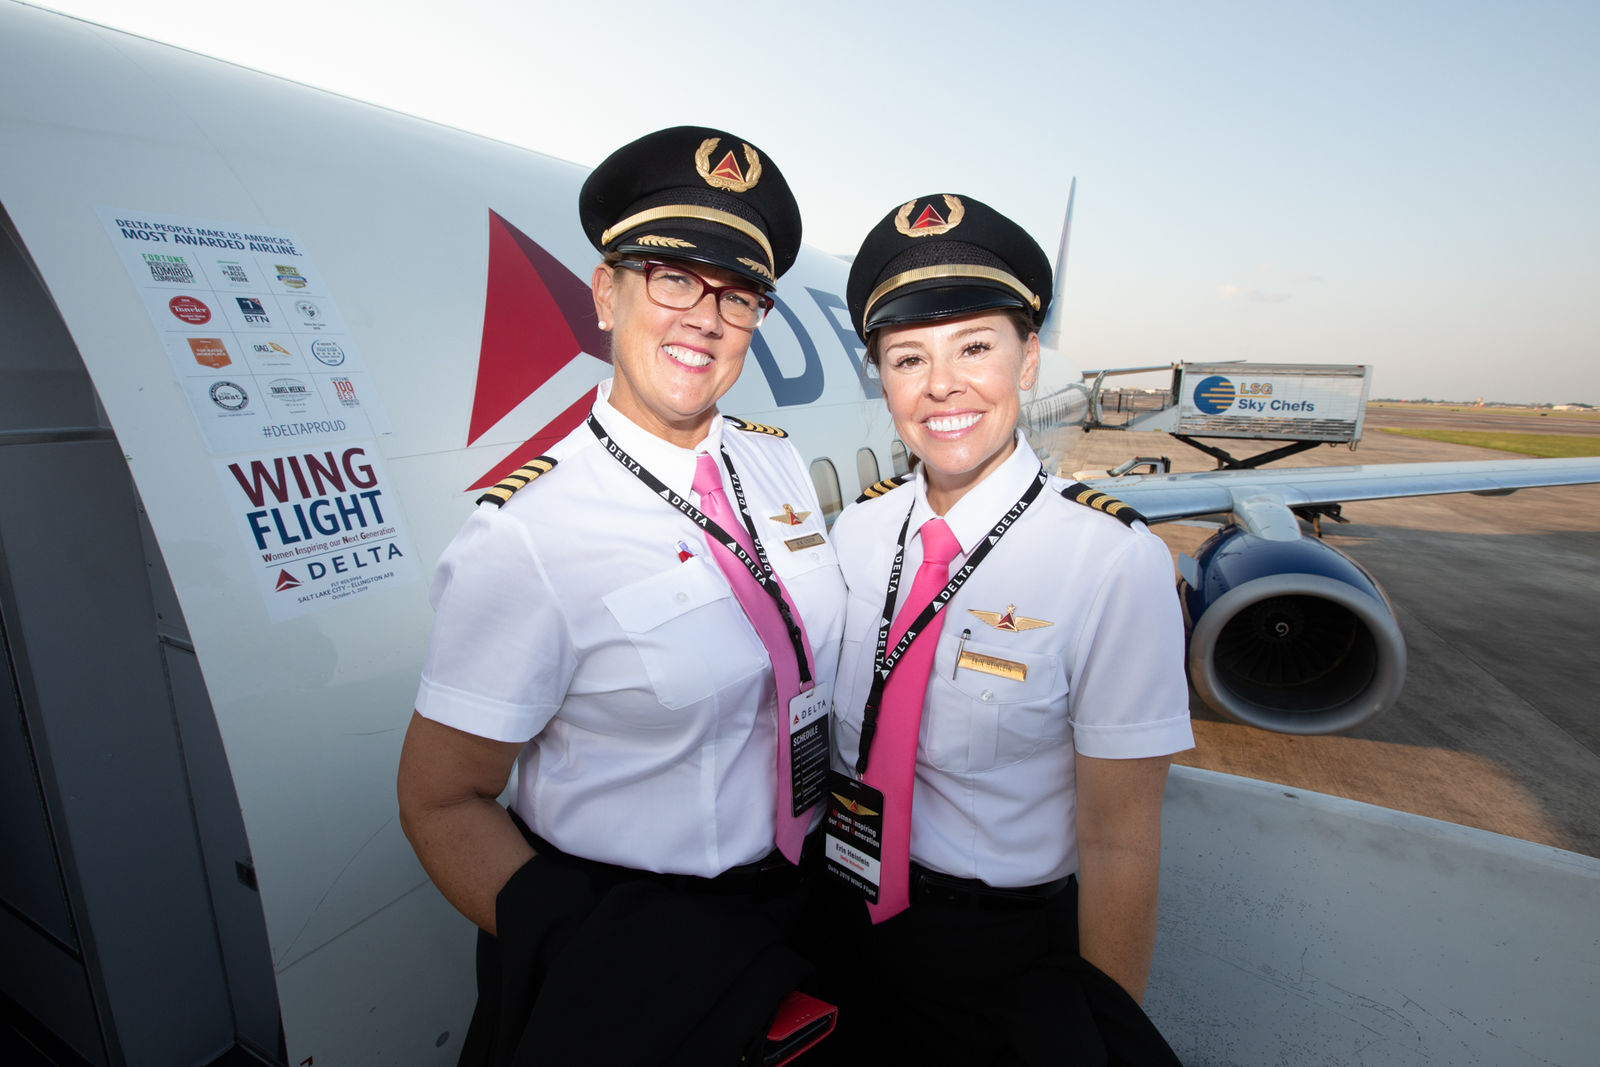 The plane had an all-female pilot and flight crew, ramp agents, and gate agents on the ground, and women were in the control tower giving pilots instructions (Delta)